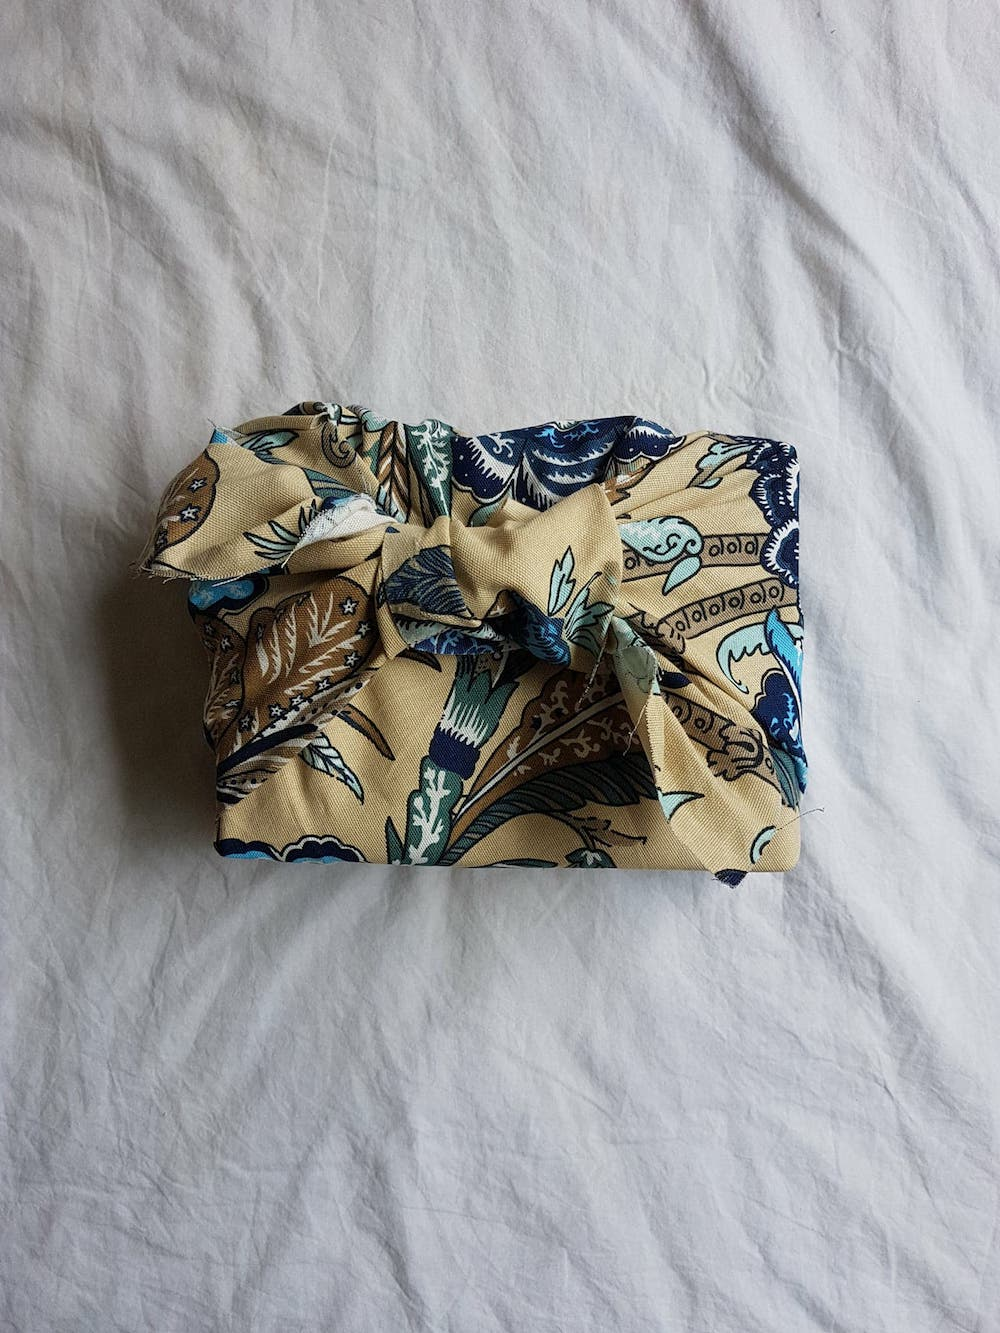 Furoshiki, the Japanese art of fabric wrapping and knot tying